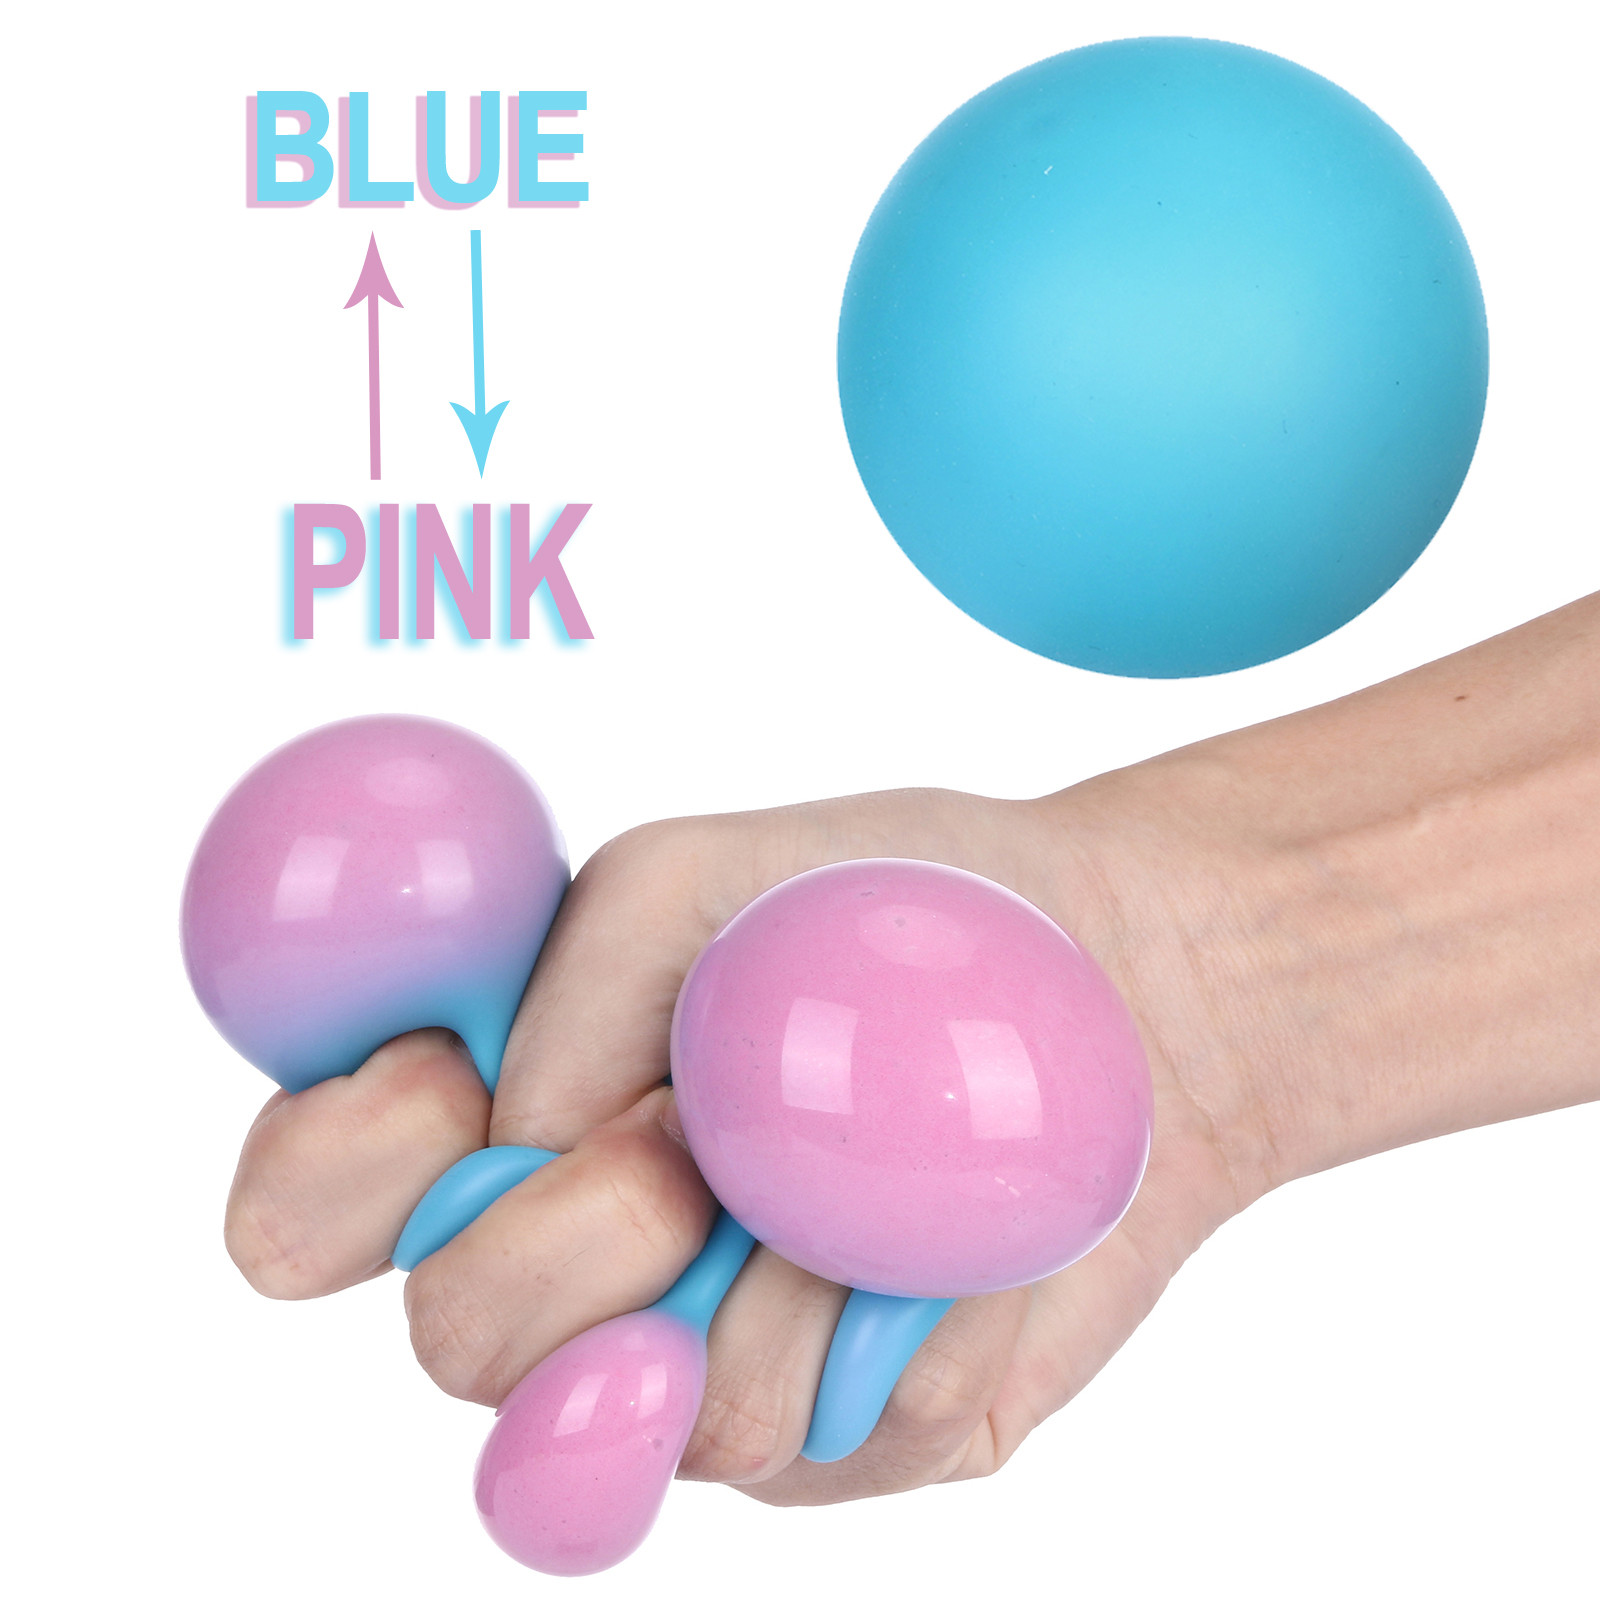 Stress Relief Ball Toys Change Colour Squeezing Balls For Kids And Adults Toy Decompression Toy For Children img2